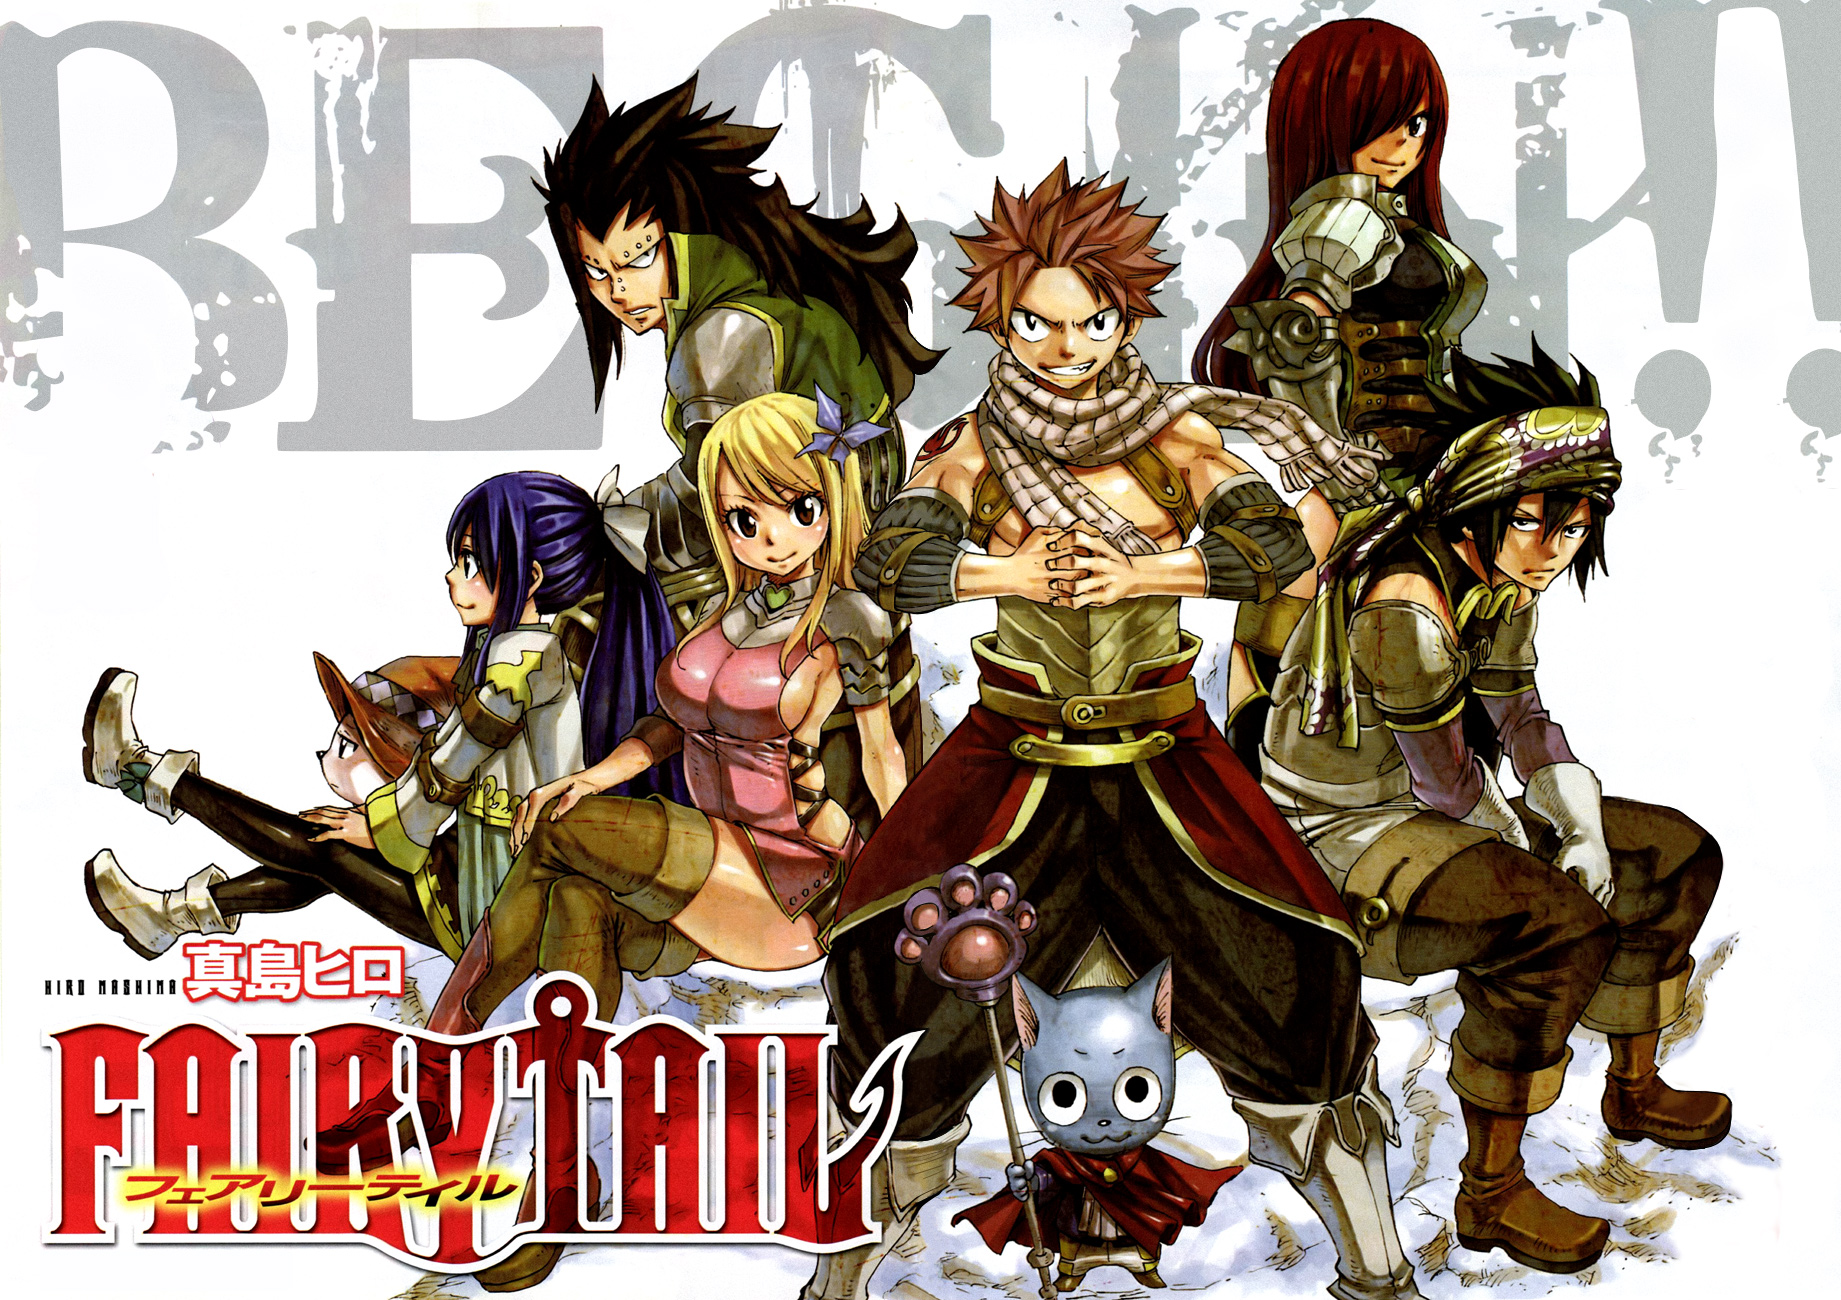 Fairy Tail Chapter 356